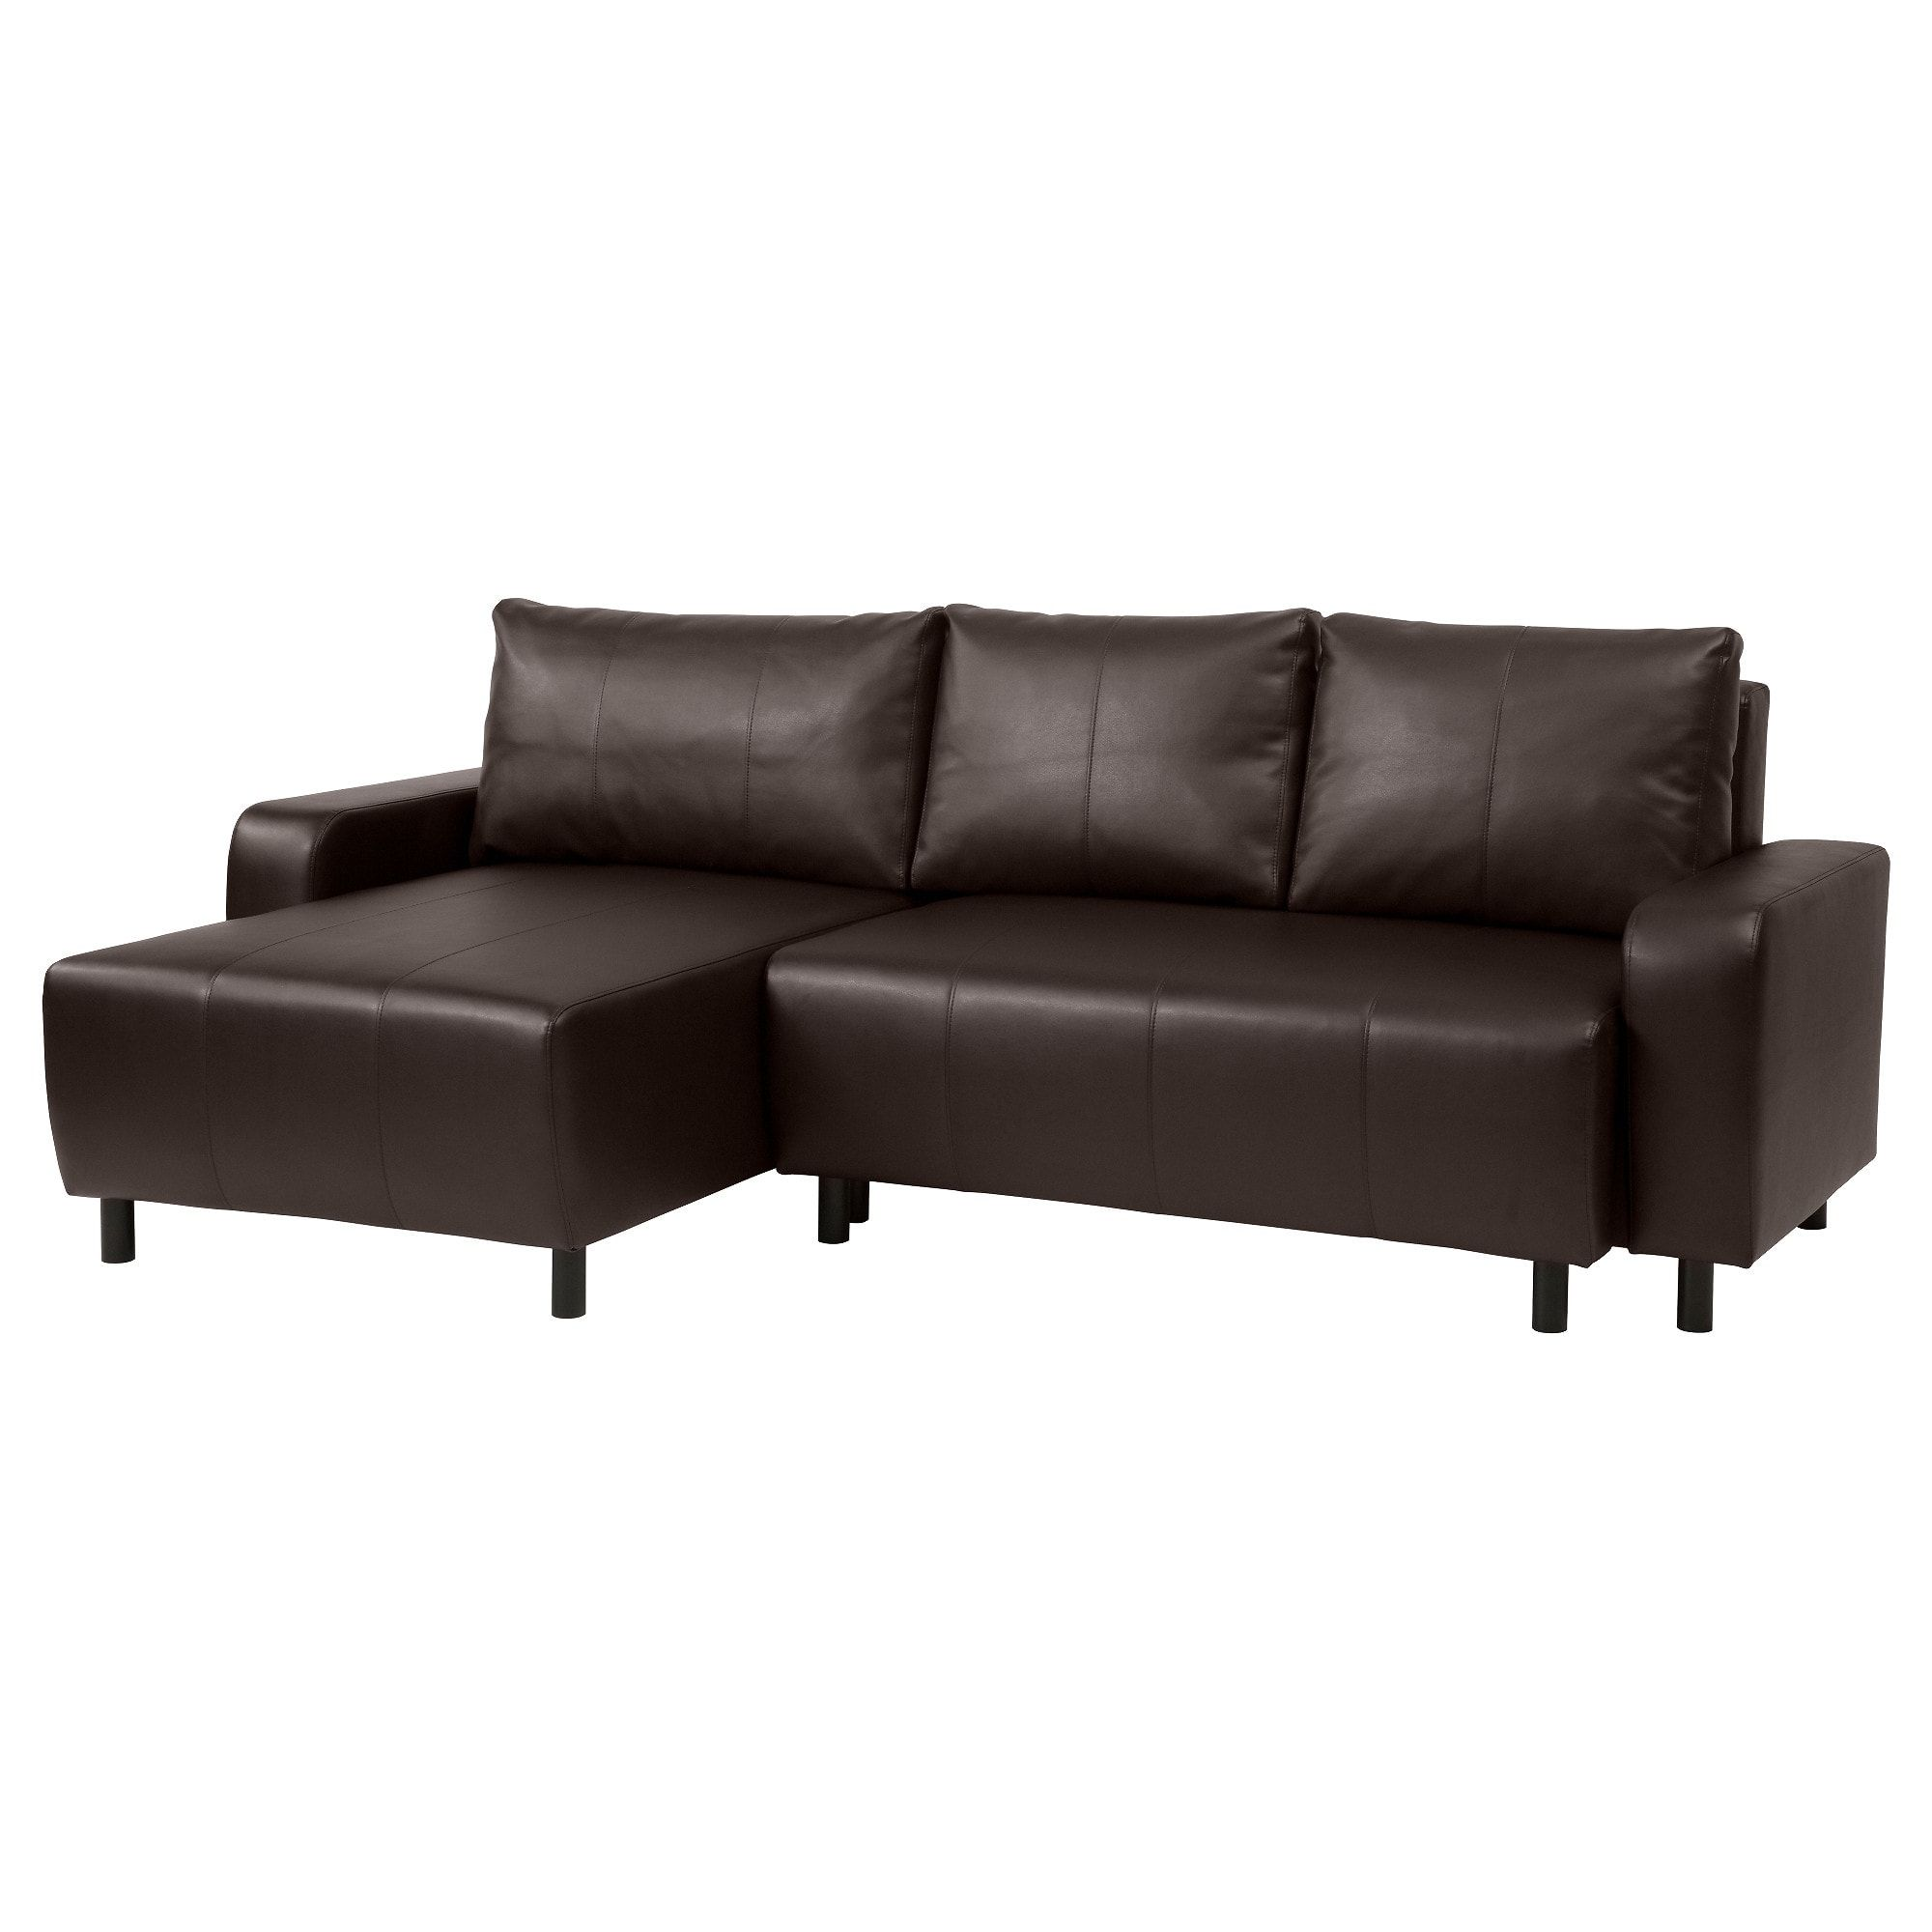 Ikea Us Furniture And Home Furnishings Lovely Sofas Beautiful Sofa Bed Furniture